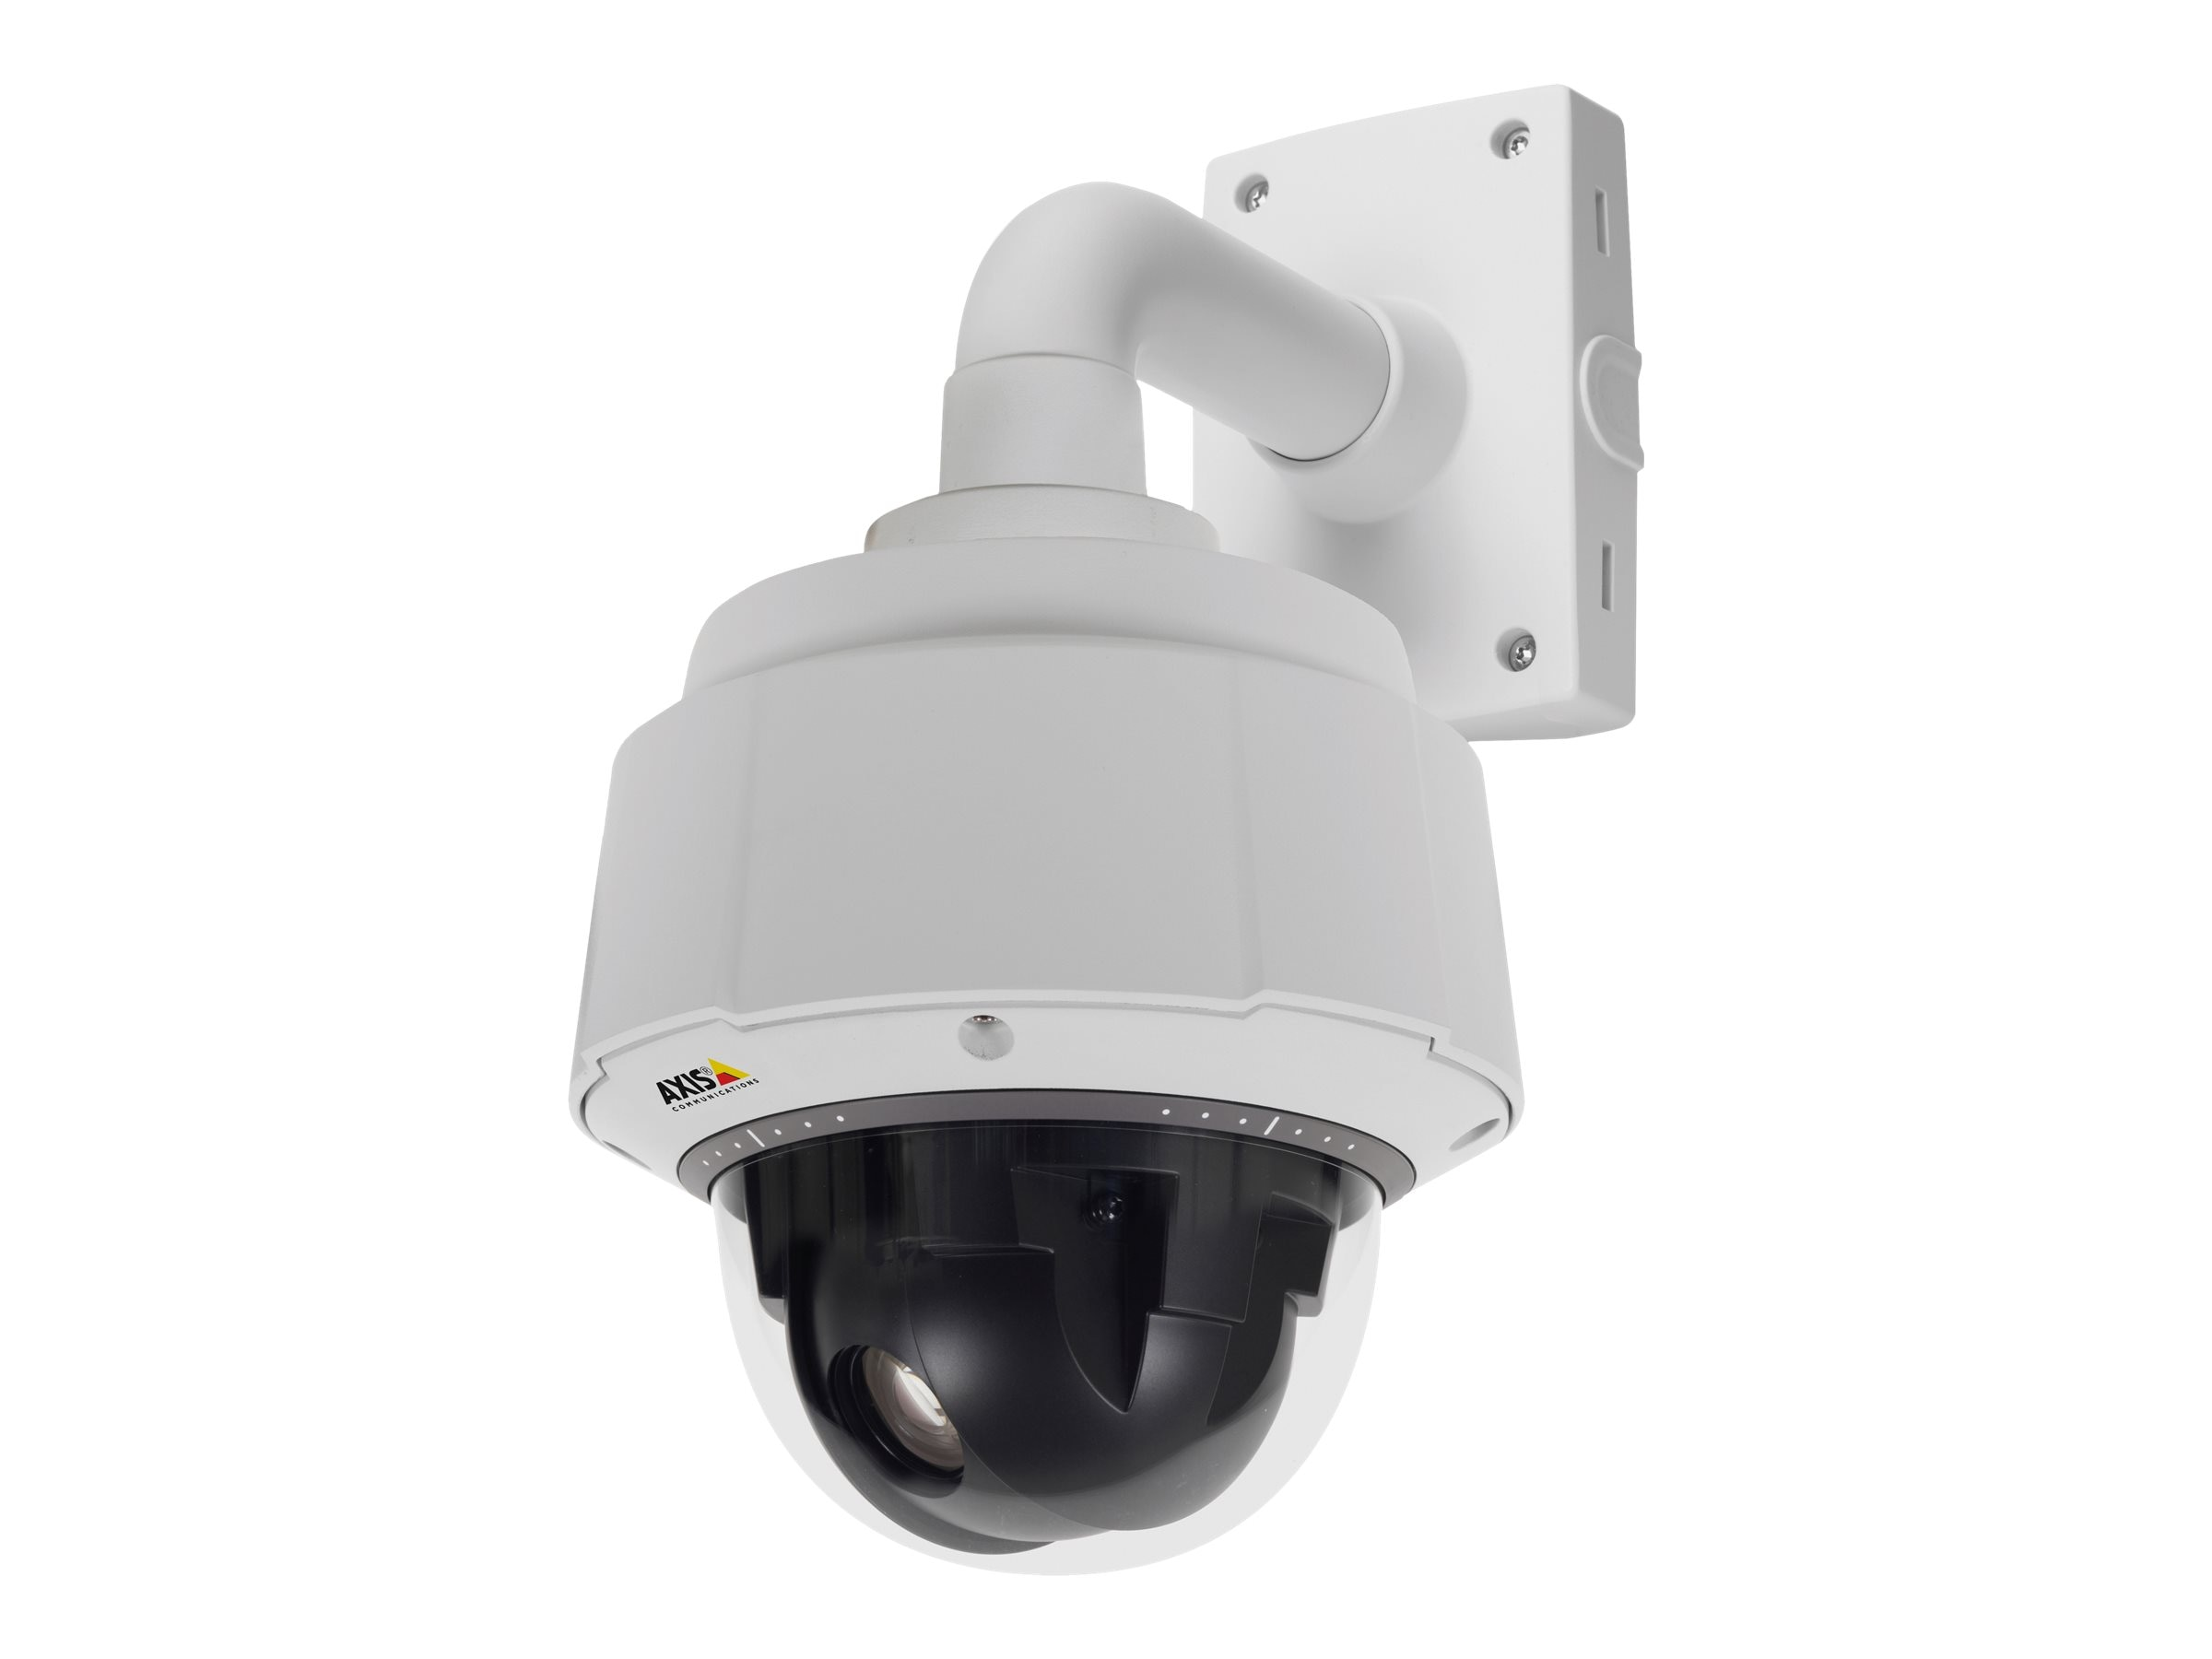 Axis Q6042-E PTZ Dome Network Camera, 0560-004, 16398906, Cameras - Security